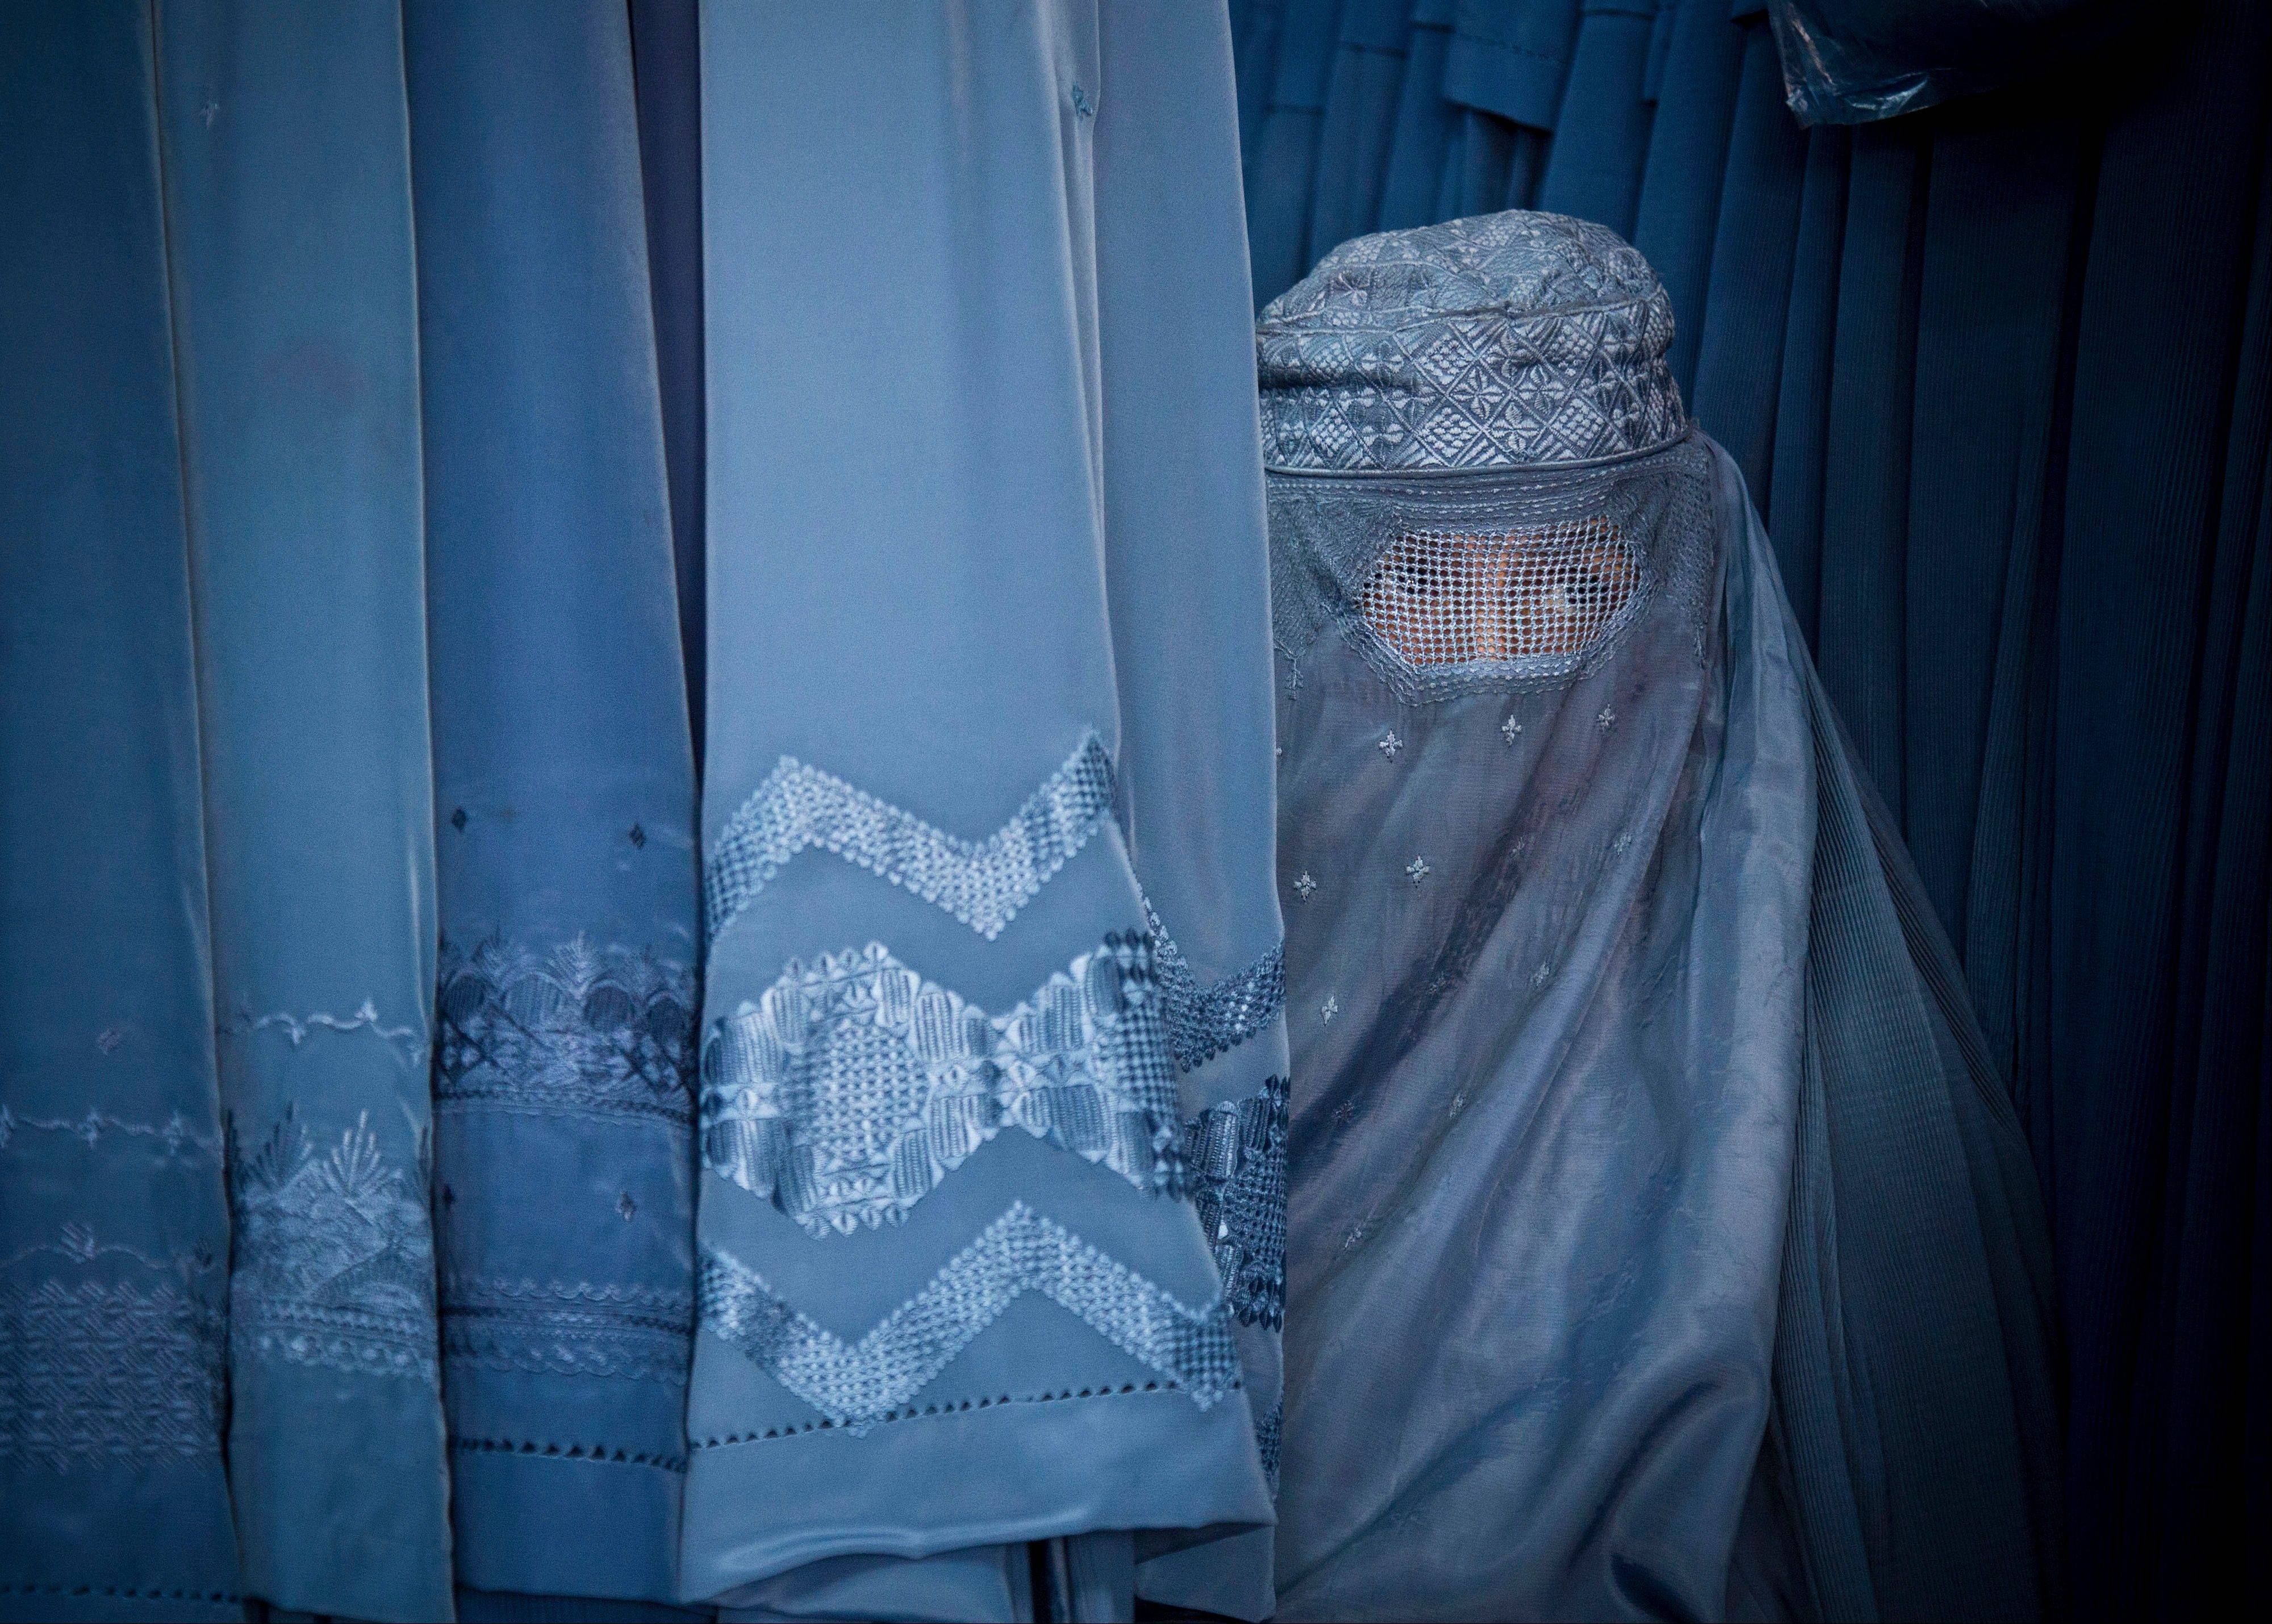 An Afghan woman peers through the eye slit of her burqa as she waits to try on a new burqa in shop in the old town of Kabul, Afghanistan. Conservative religious lawmakers in Afghanistan blocked a law on Saturday that aims to protect women�s freedoms, with some arguing that parts of it violate Islamic principles or encourage women to have sex outside of marriage.